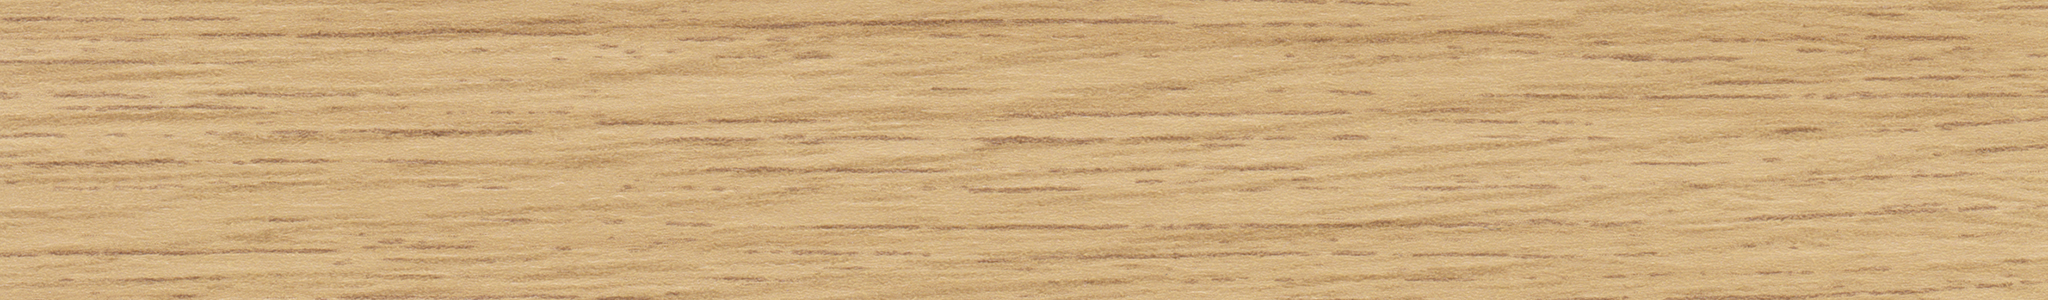 HD 643395 Melamine Edge FALZ Oak Corbridge Smooth